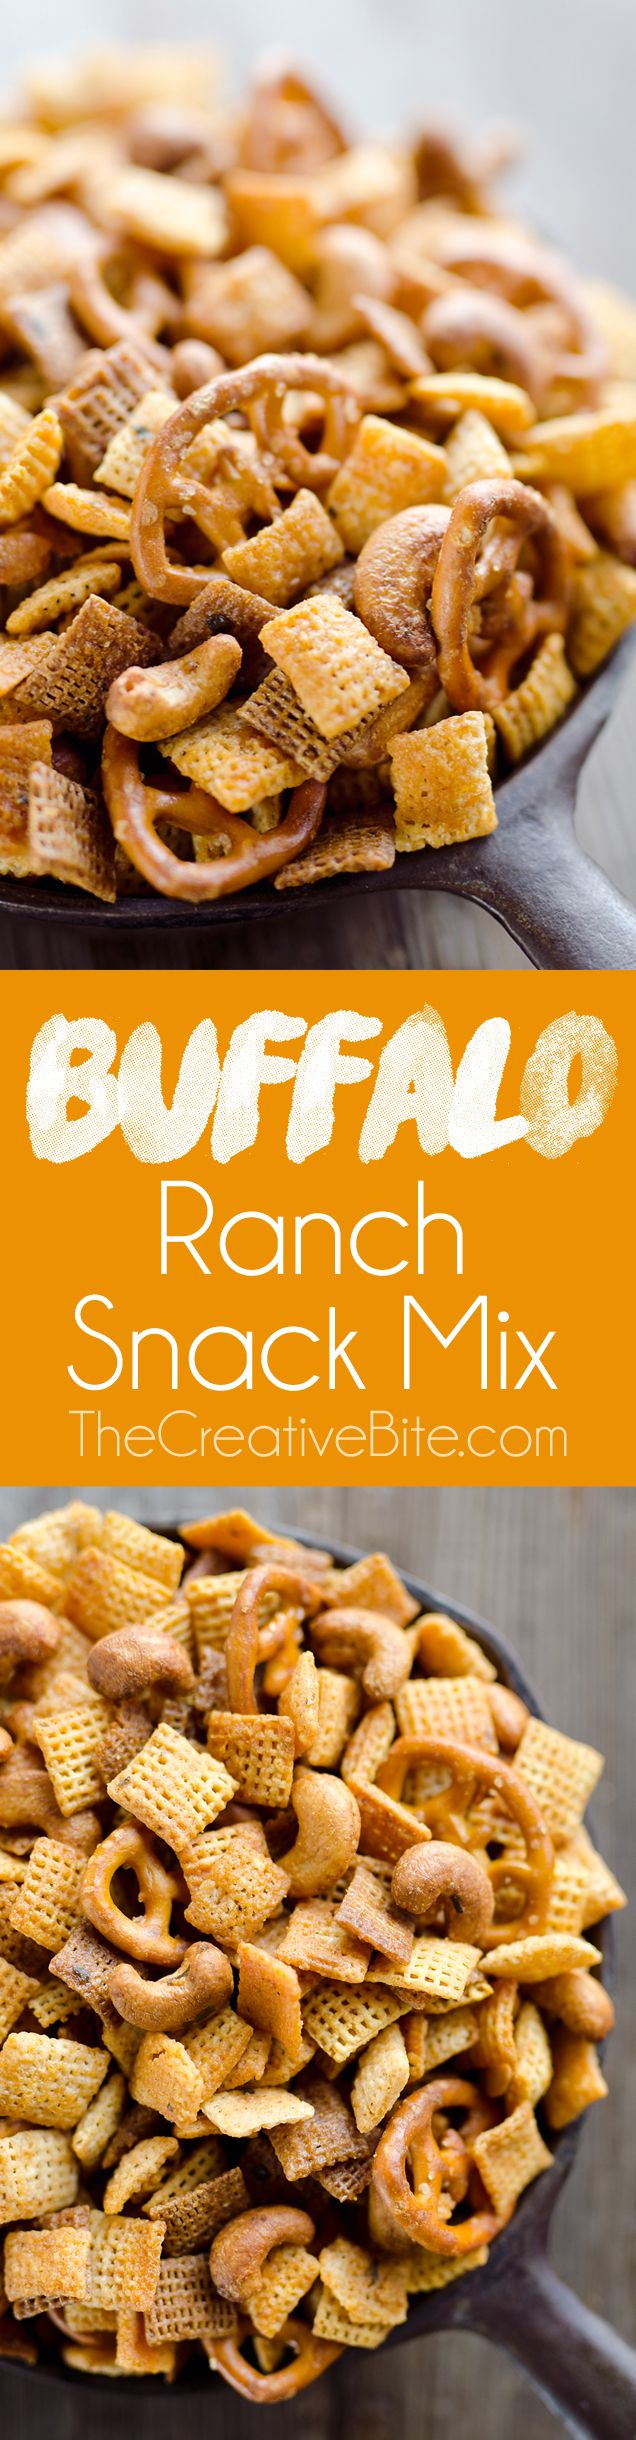 Buffalo Ranch Snack Mix is an easy treat perfect for the big game or holidays. Chex Mix is combined with pretzels and cashews and tossed in a spicy buffalo ranch sauce for a twist on your traditional snack mix.